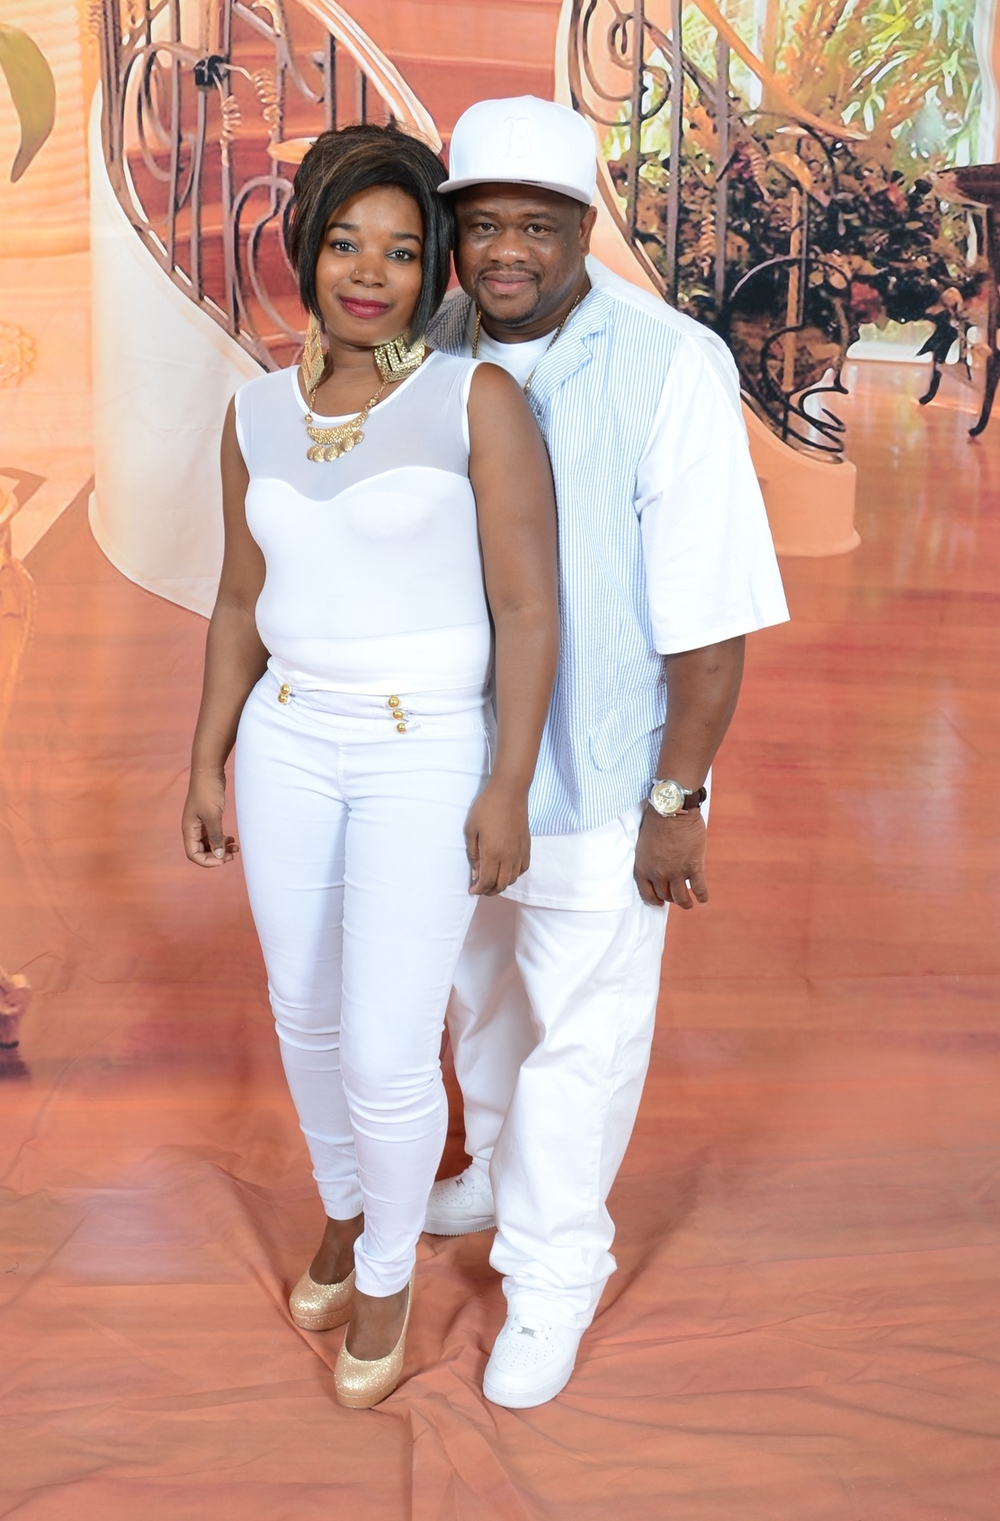 All White Semi-Formal Affair 7.5.14-153.jpg